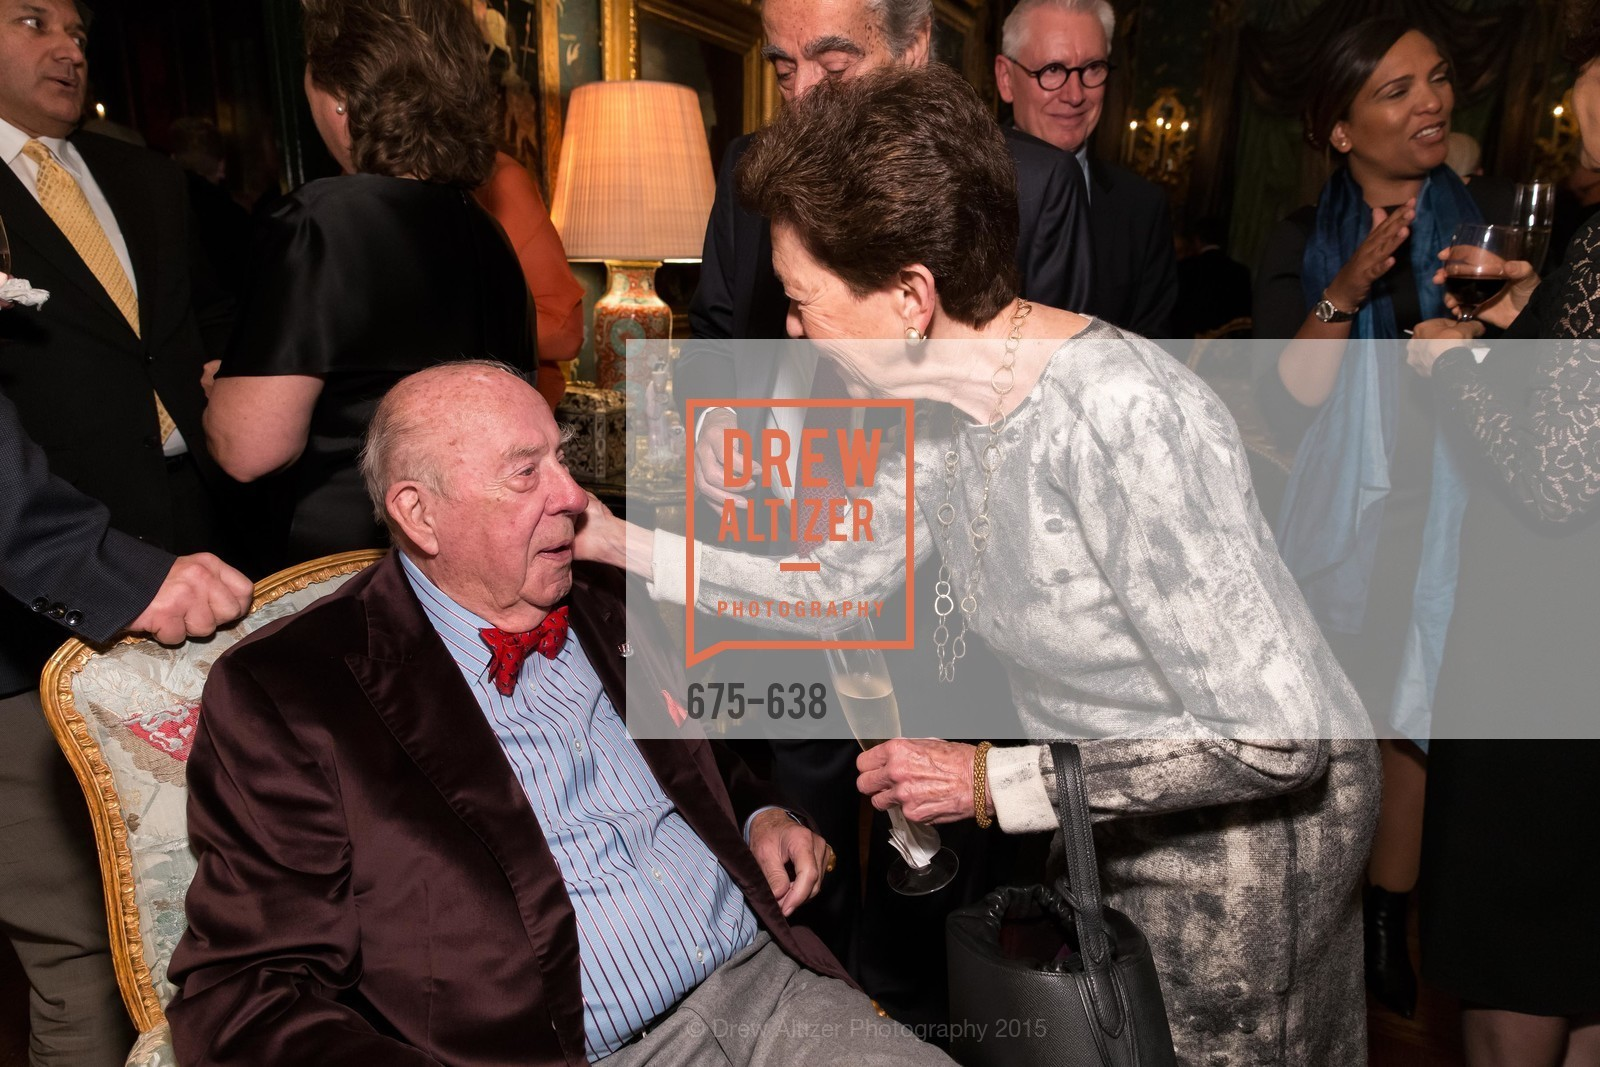 George Shultz, Roselyne Swig, San Francisco Mayor's Office of Protocol Christmas Party, Private Residence, December 9th, 2015,Drew Altizer, Drew Altizer Photography, full-service agency, private events, San Francisco photographer, photographer california